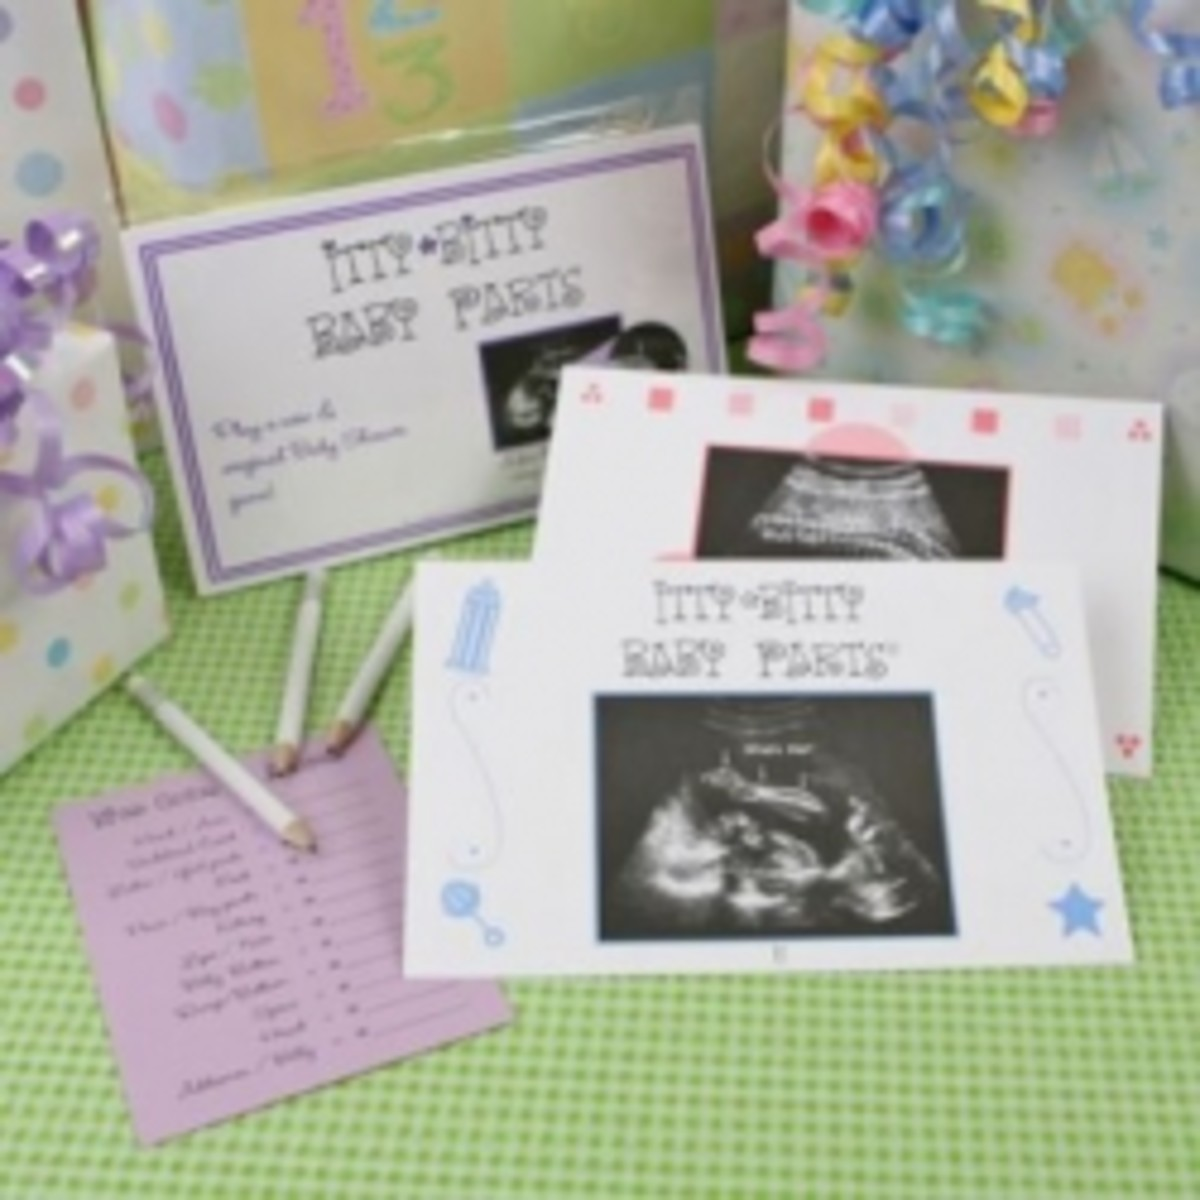 Bitty Baby Parts baby shower game